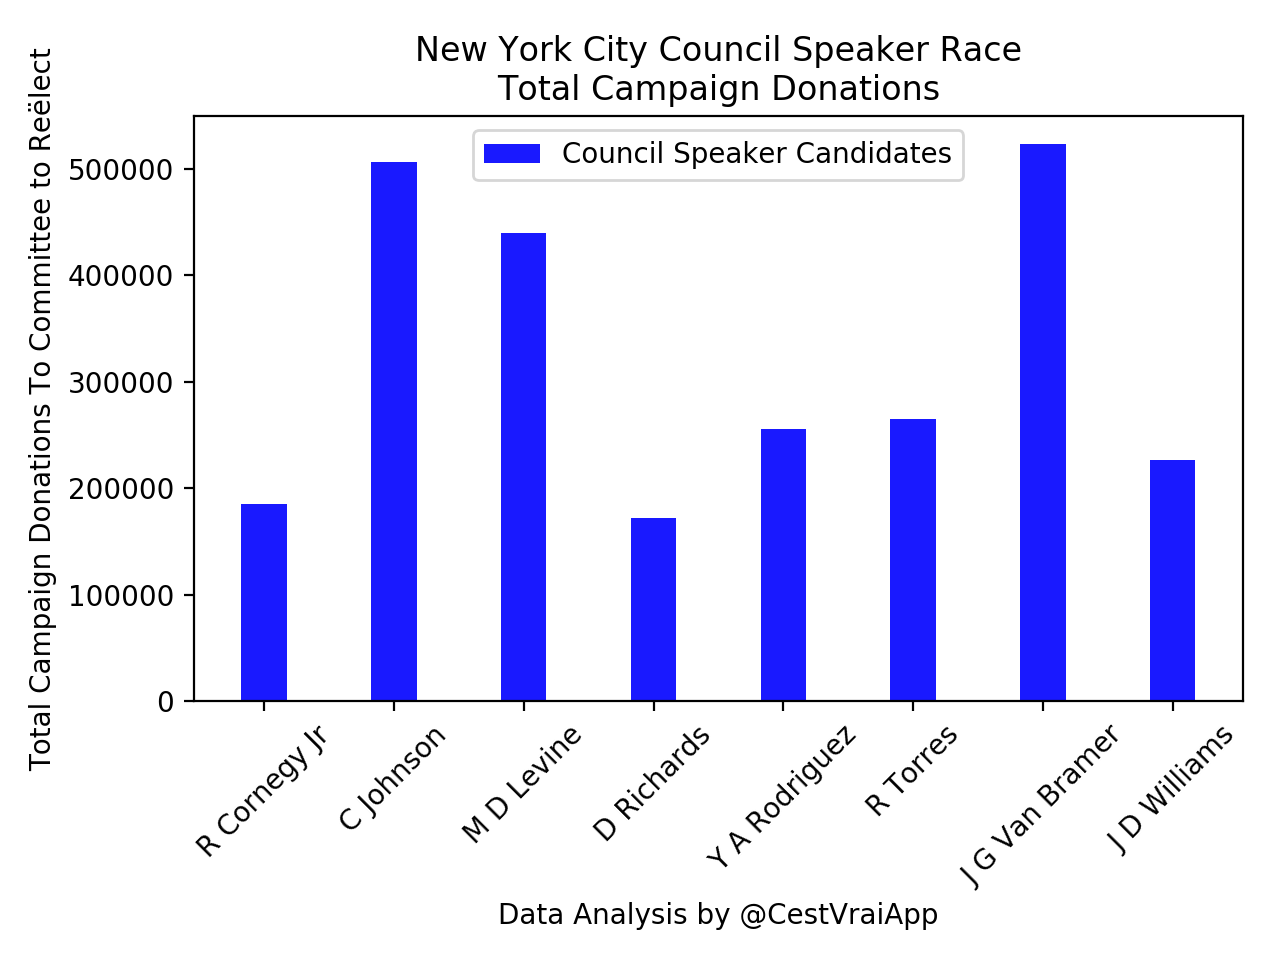 Councilmember Corey Johnson raised over $505,000 for his committee to reëlect, the second-largest amount of money amongst Council speaker candidates during the 2017 Municipal election cycle. Like all of the Council speaker candidates, Councilmember Johnson had no dedicated campaign committee for the Council speaker race, meaning fundraising or expenditures, if any, passed through his committee to reëlect. Four years ago, guidance given by the New York City Campaign Finance Board to then Councilmember Melissa Mark-Viverito (D-Spanish Harlem) indicated that it was prohibited to use fundraising from a committee to reëlect for purposes related to a Council speaker race. Source :  @CestVraiApp